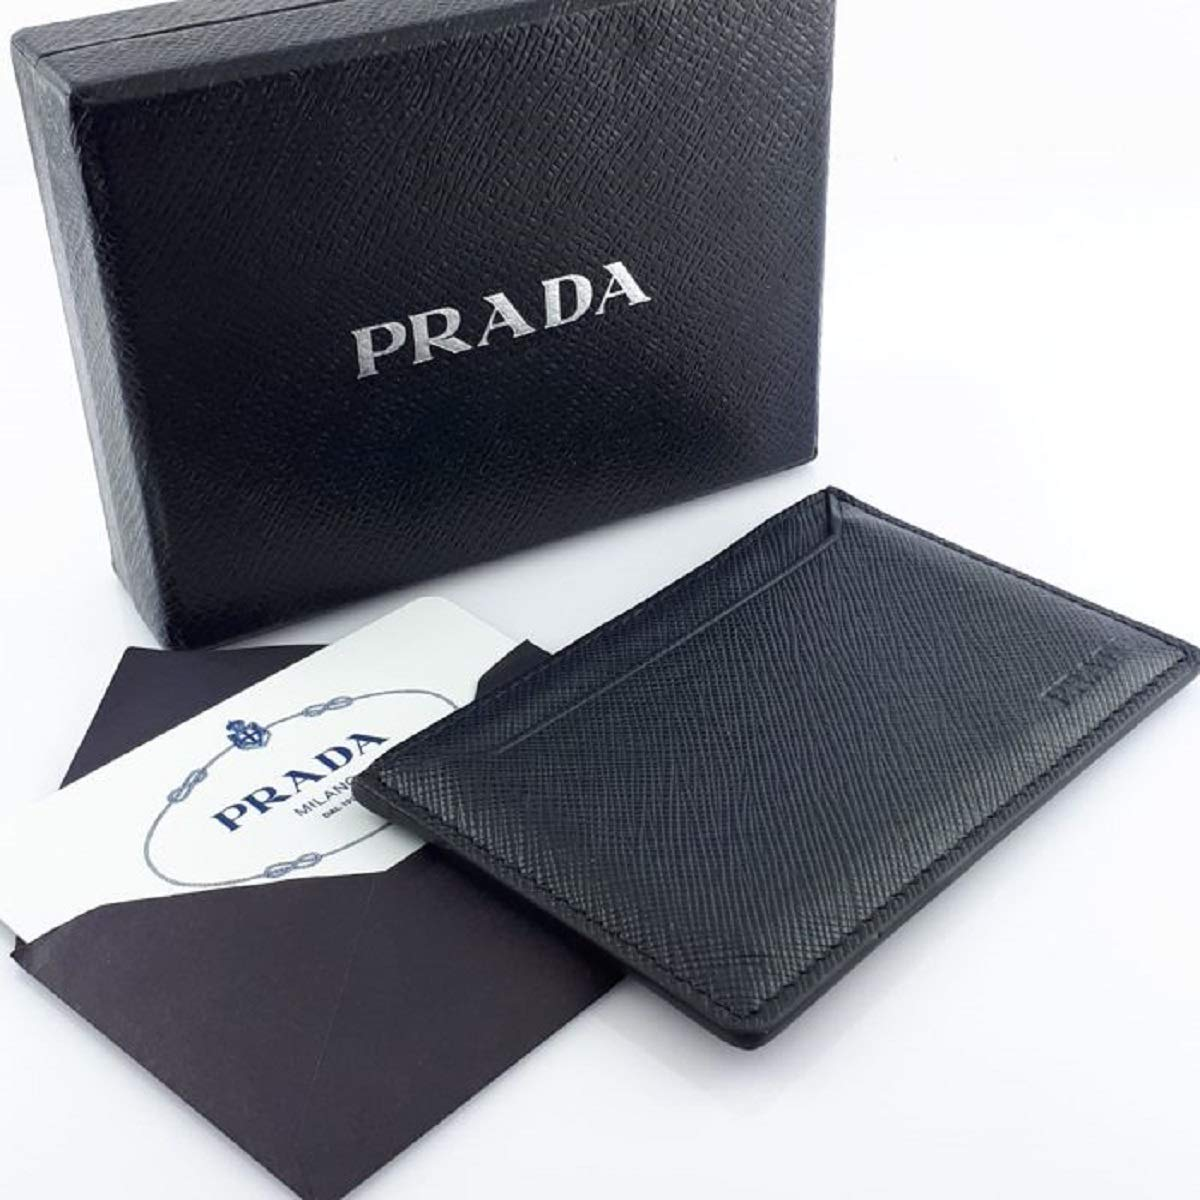 270e085b5ac69c Prada Baltico Navy Saffiano Men's Leather Wallet Credit Card Holder Case  Bill 2MC208 at Amazon Men's Clothing store: